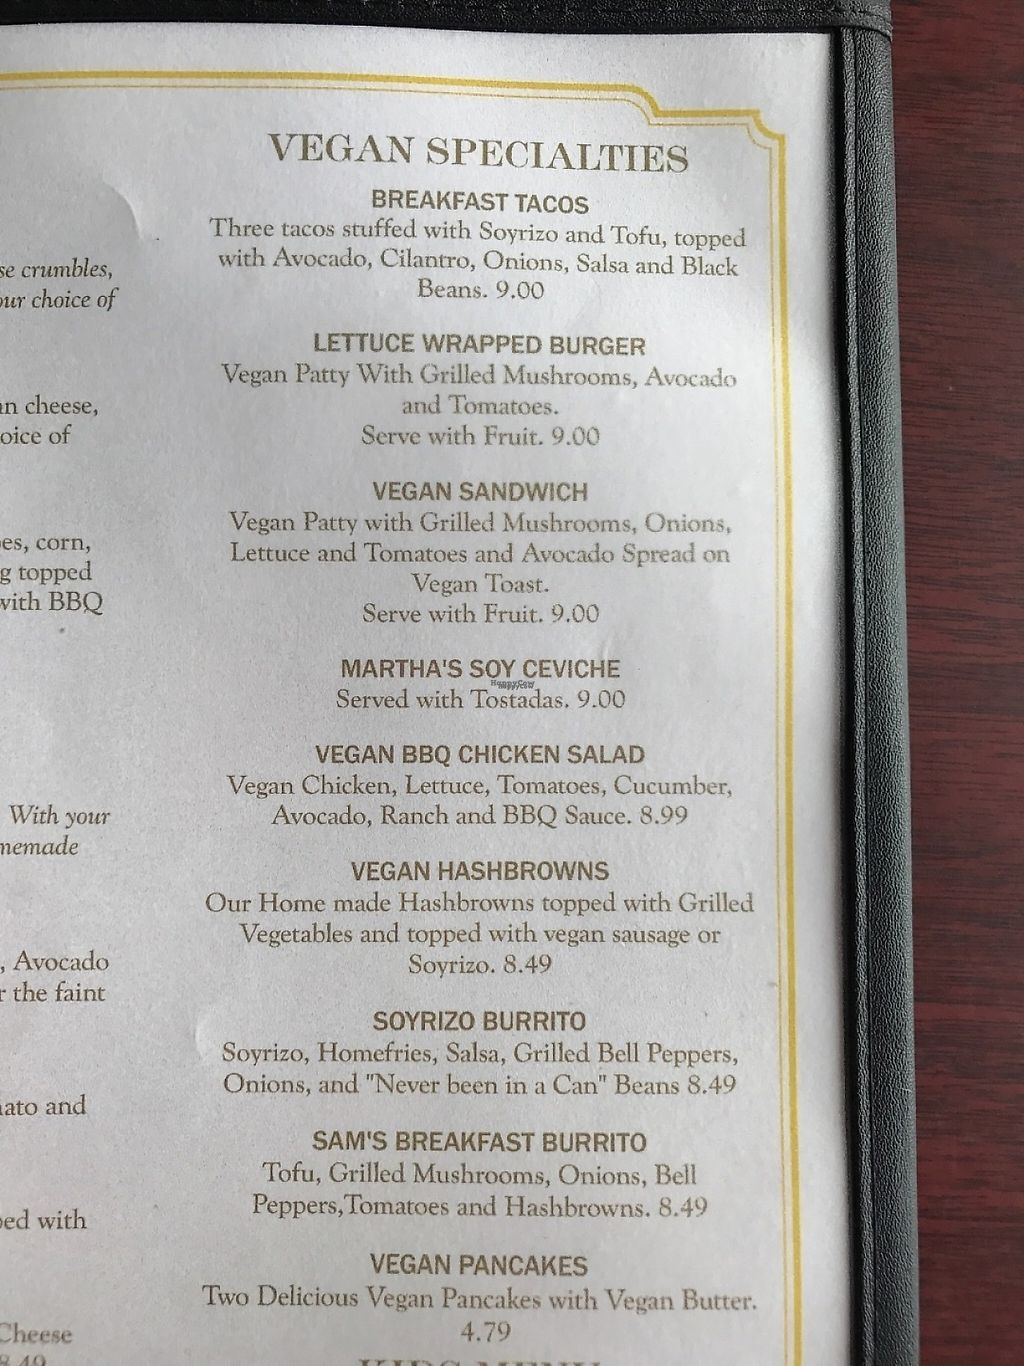 """Photo of Aunt Yese's Home Cooking  by <a href=""""/members/profile/xmrfigx"""">xmrfigx</a> <br/>Their vegan menu. Also try the vegan scrAmble that is not listed on the menu. It's amazing! <br/> March 4, 2017  - <a href='/contact/abuse/image/88111/232673'>Report</a>"""